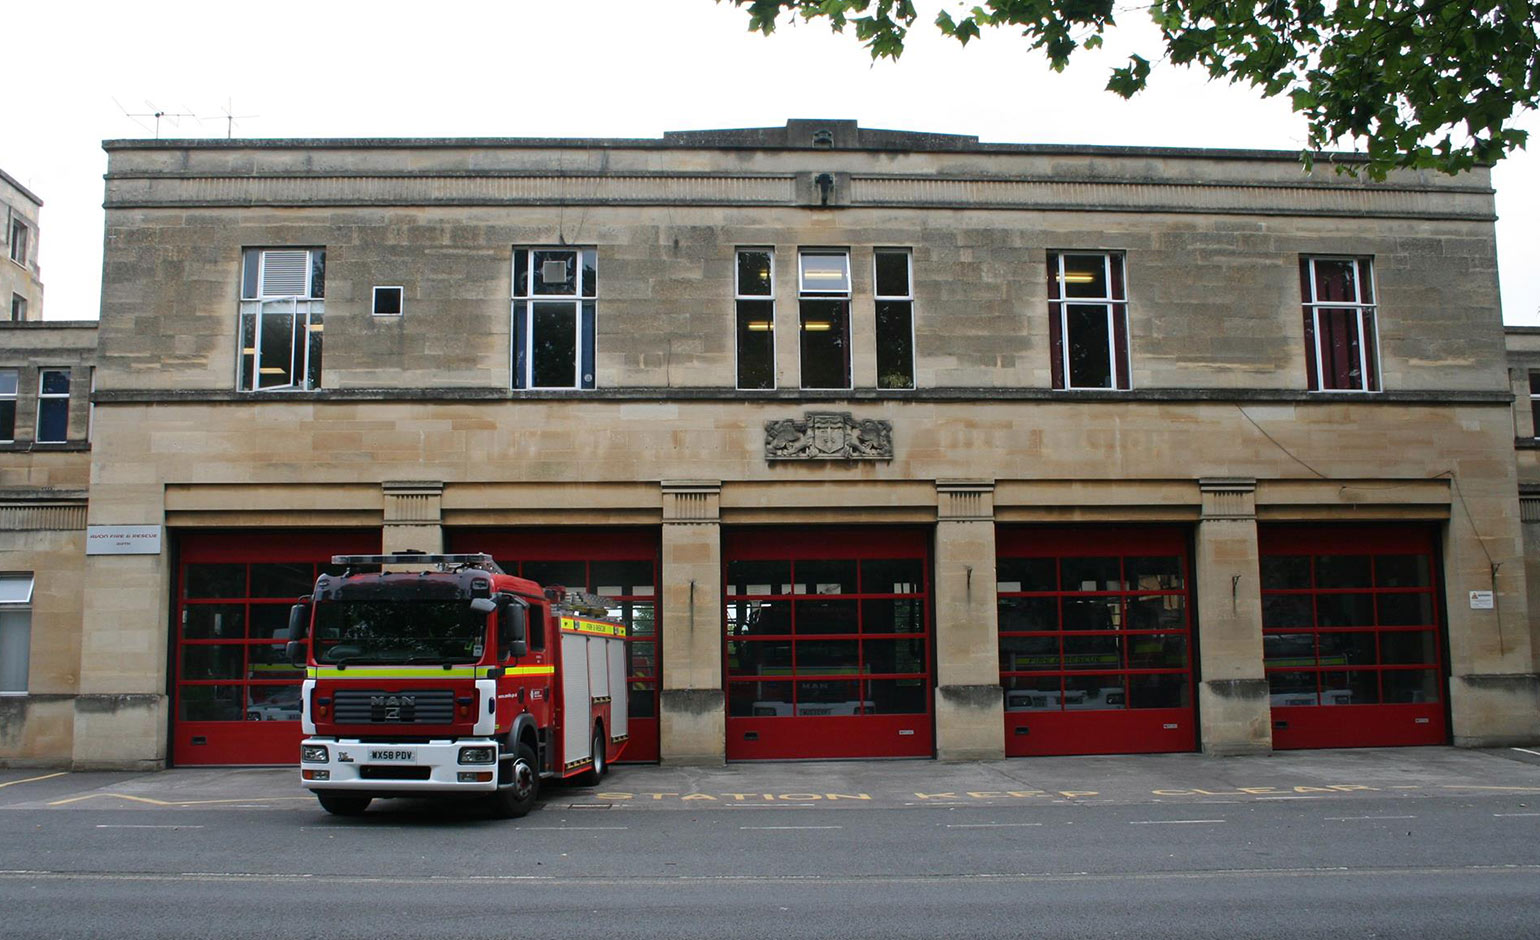 Fire crews offer advice on reducing risk of being targeted by arsonists